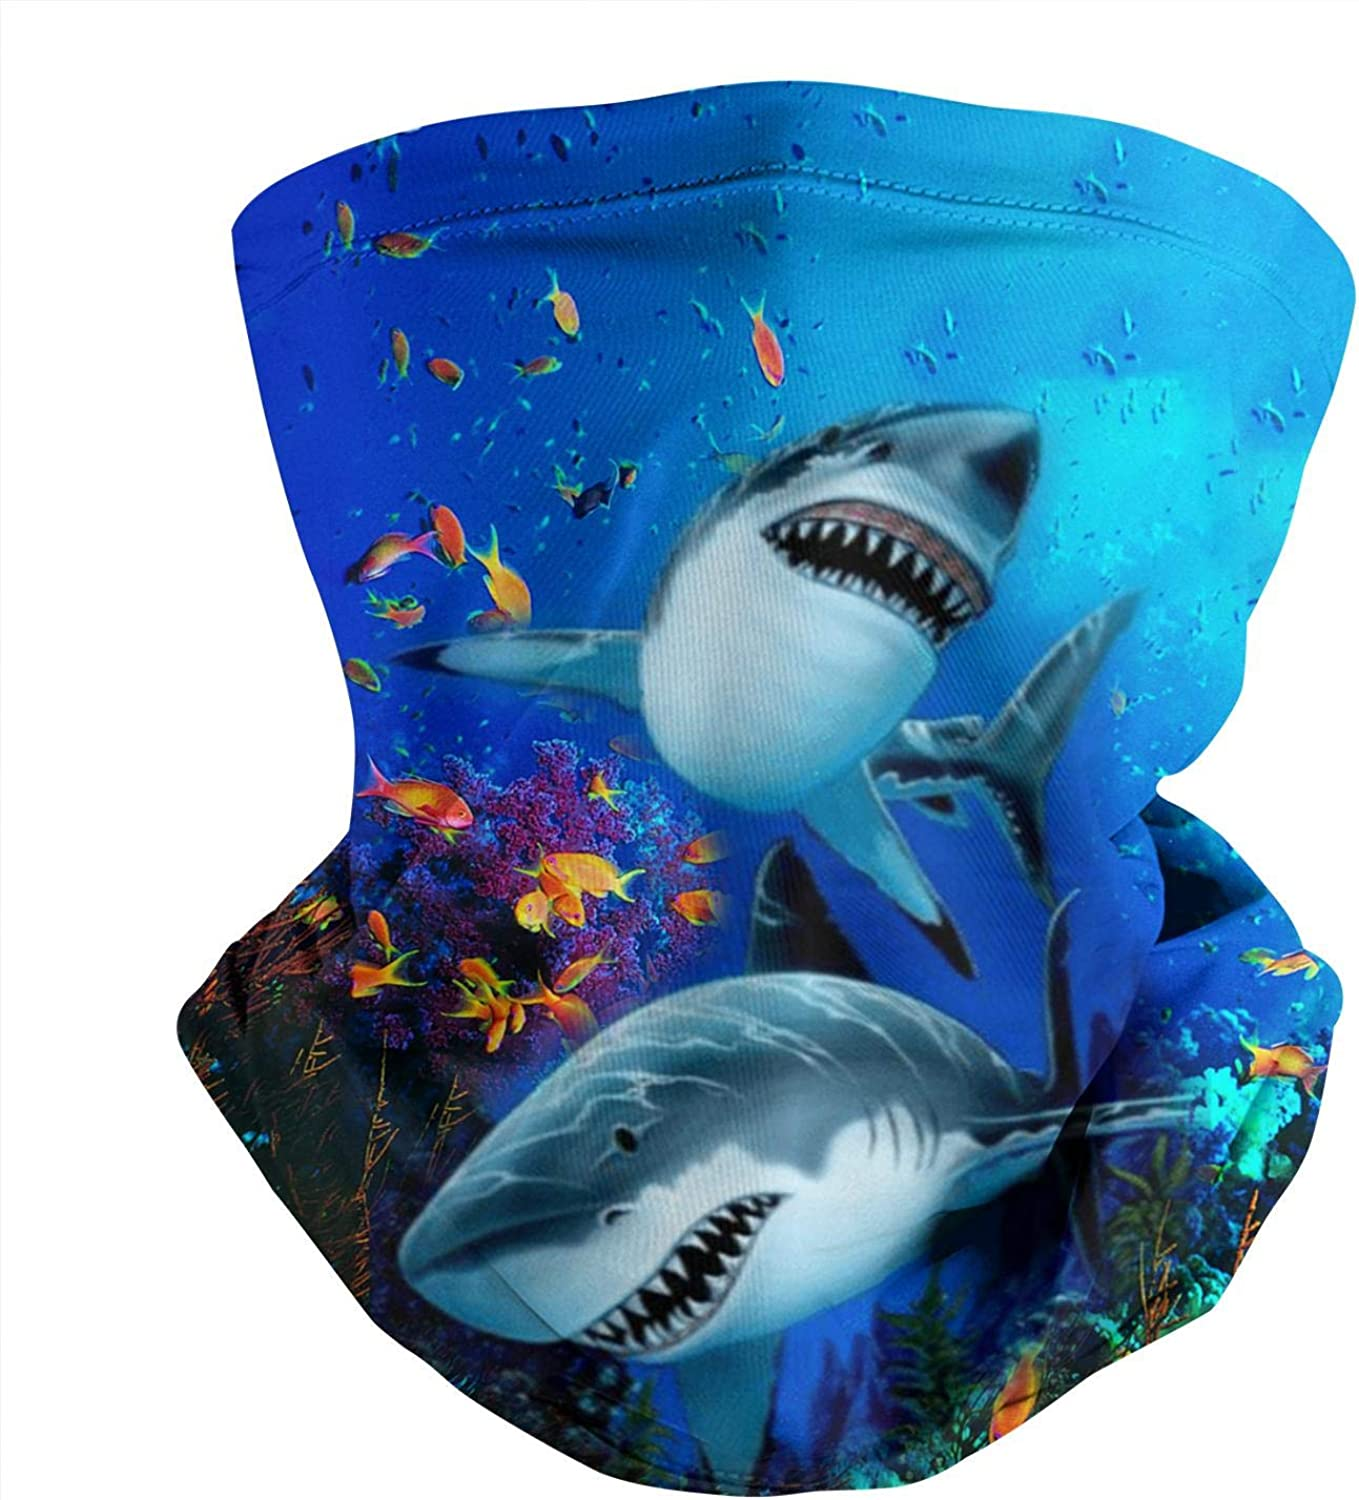 Shark Spartan Seabed Gray Retro Seamless Face Mask Bandana Headwear Neck Gaiter Balaclava for Dust Outdoor Sports